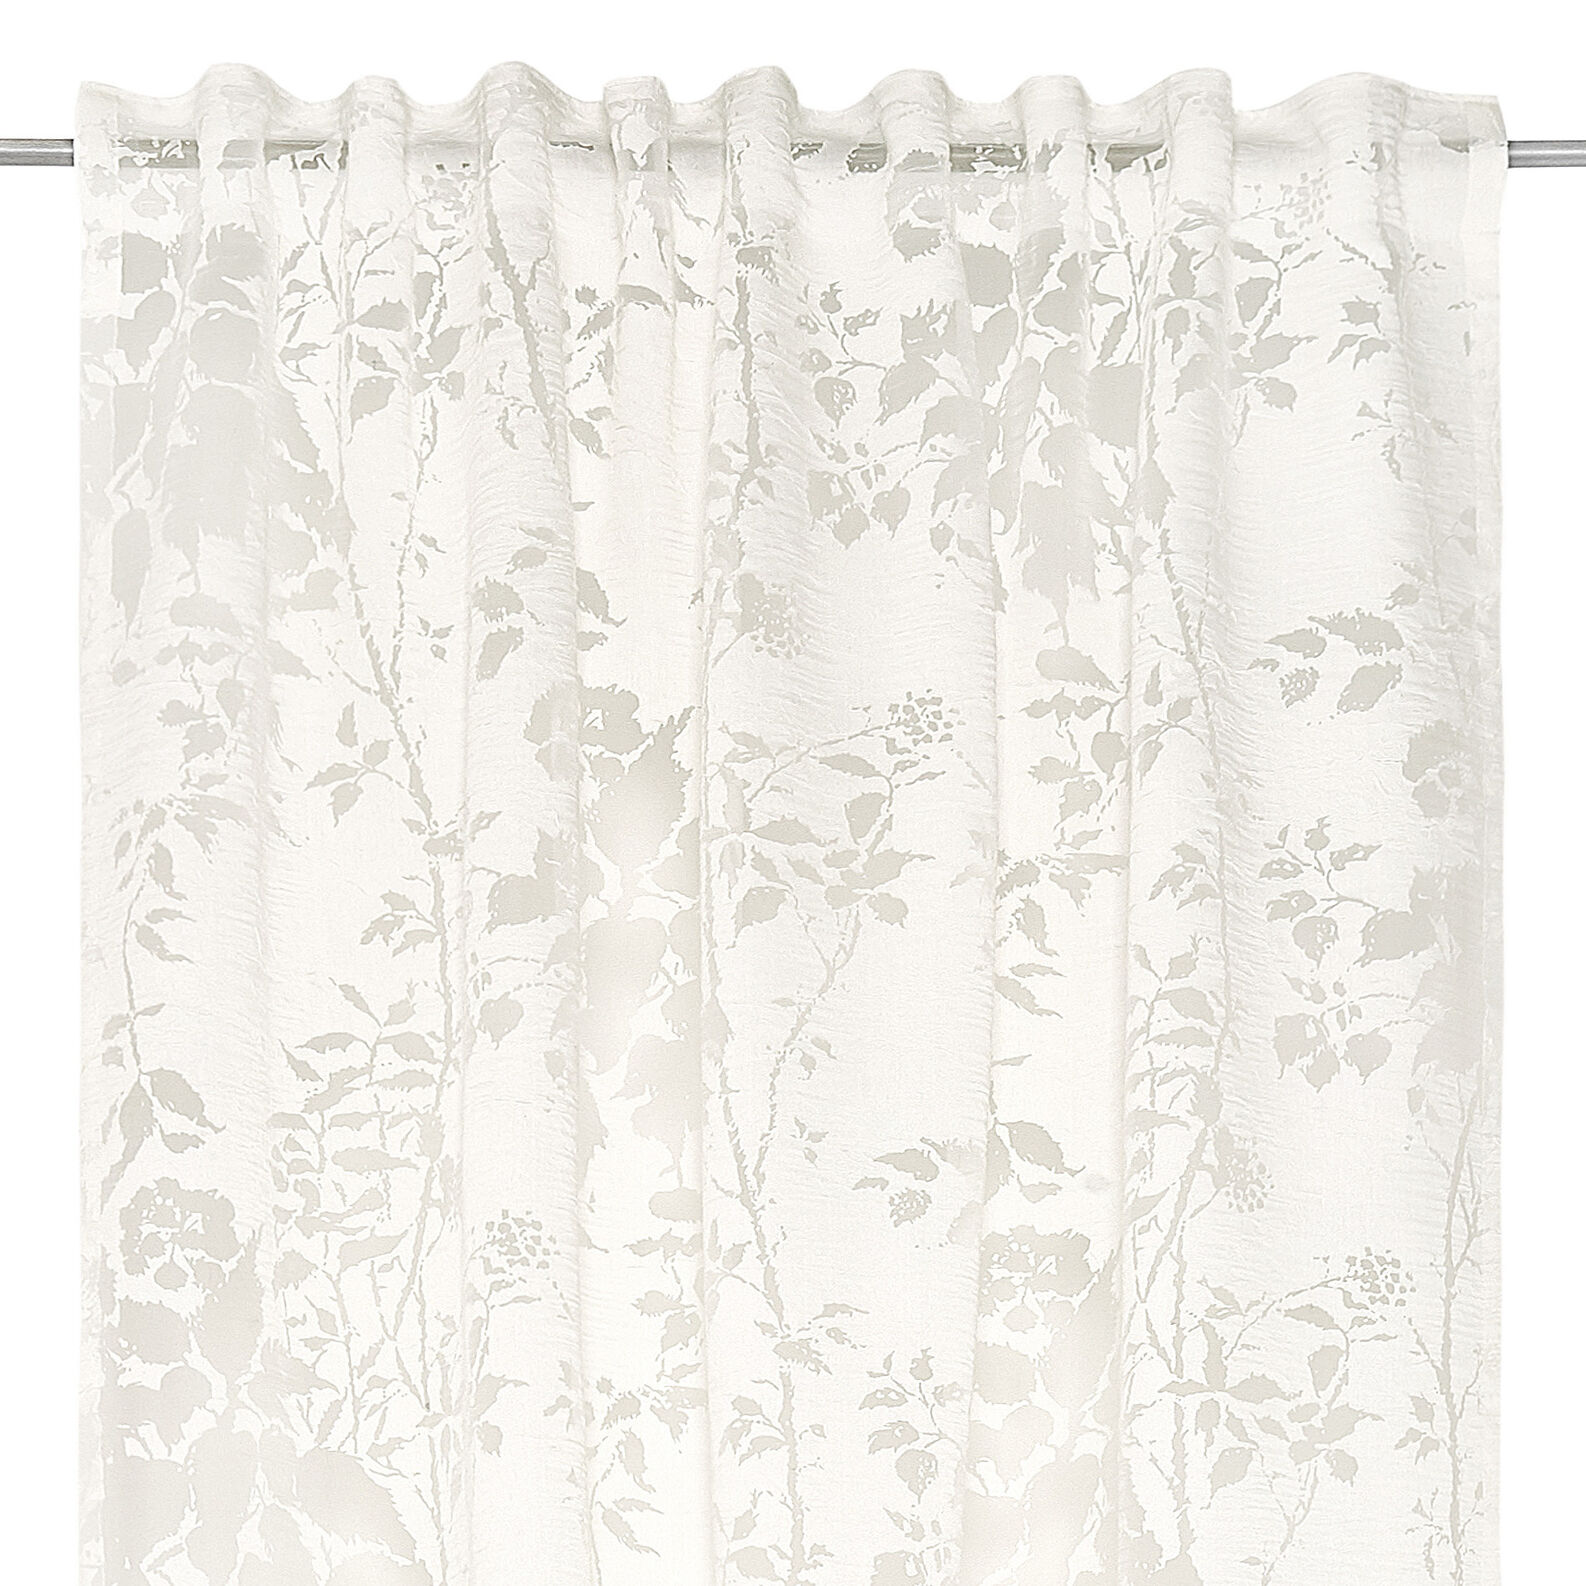 Viscose blend devorè curtain with concealed loops